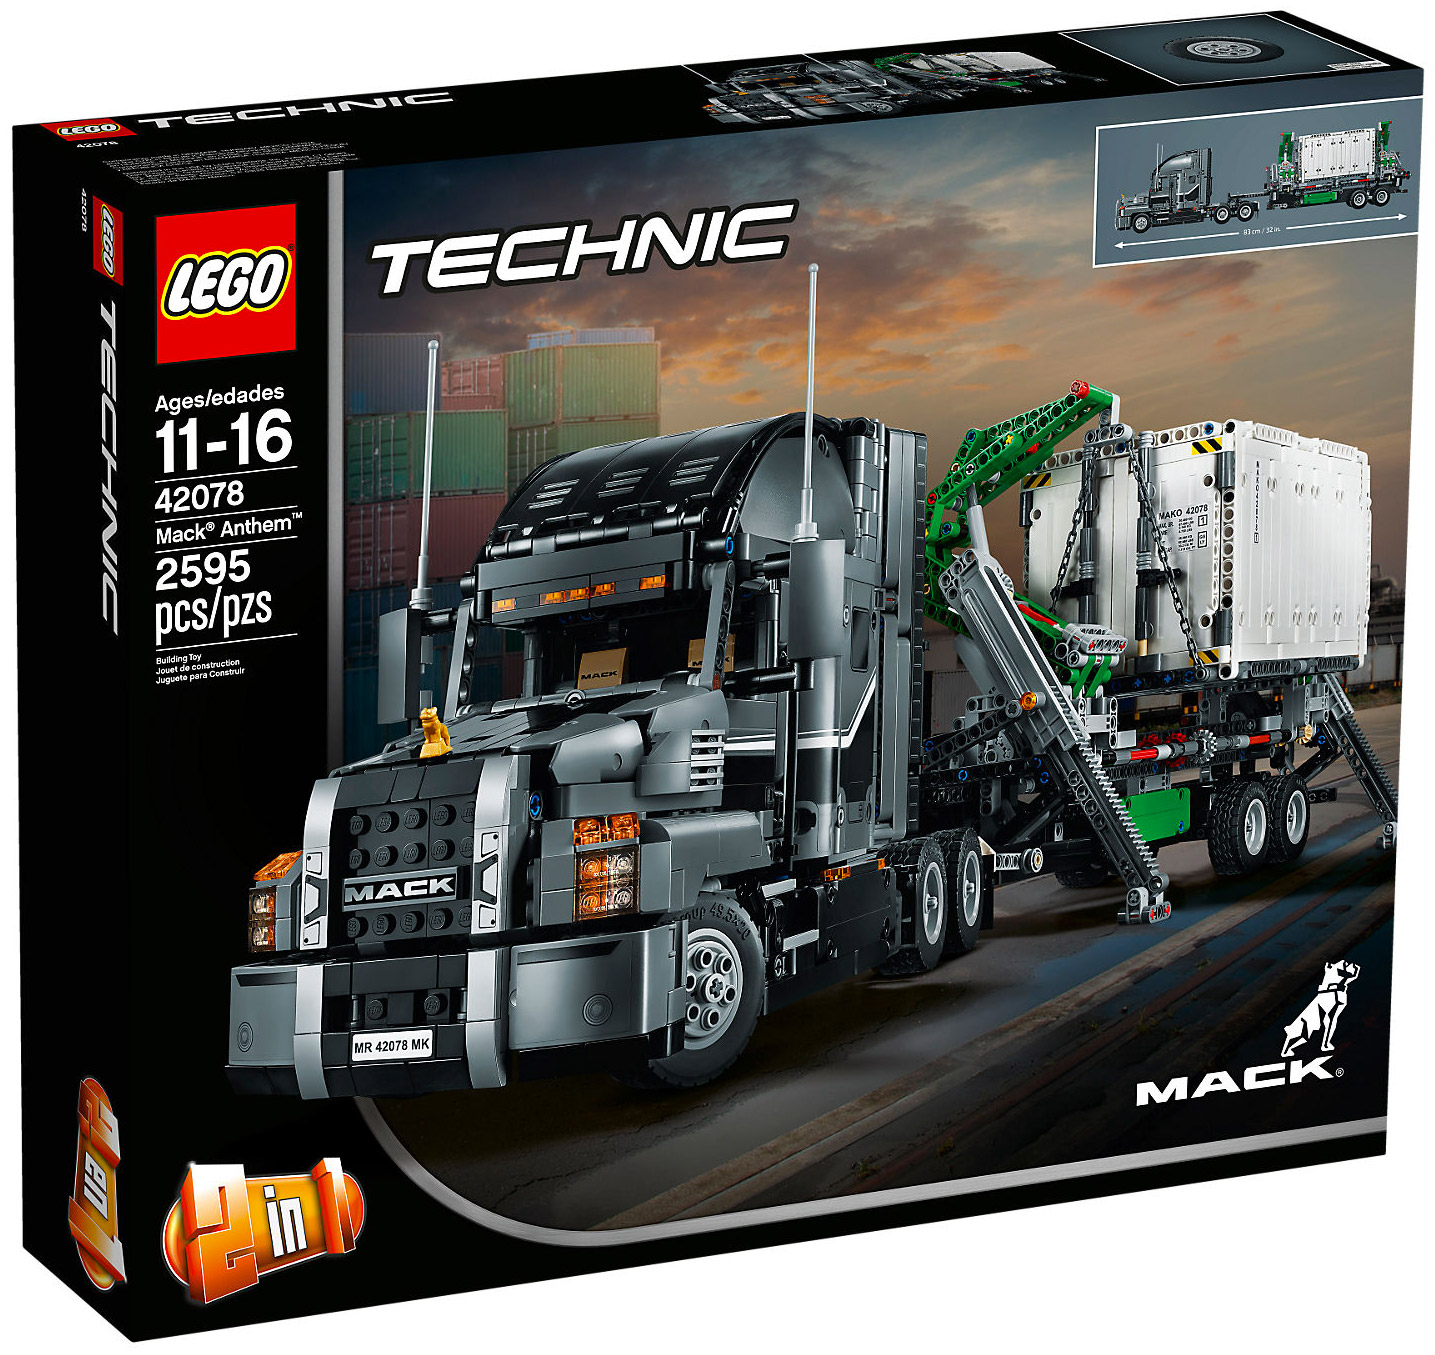 lego technic 42078 pas cher mack anthem. Black Bedroom Furniture Sets. Home Design Ideas